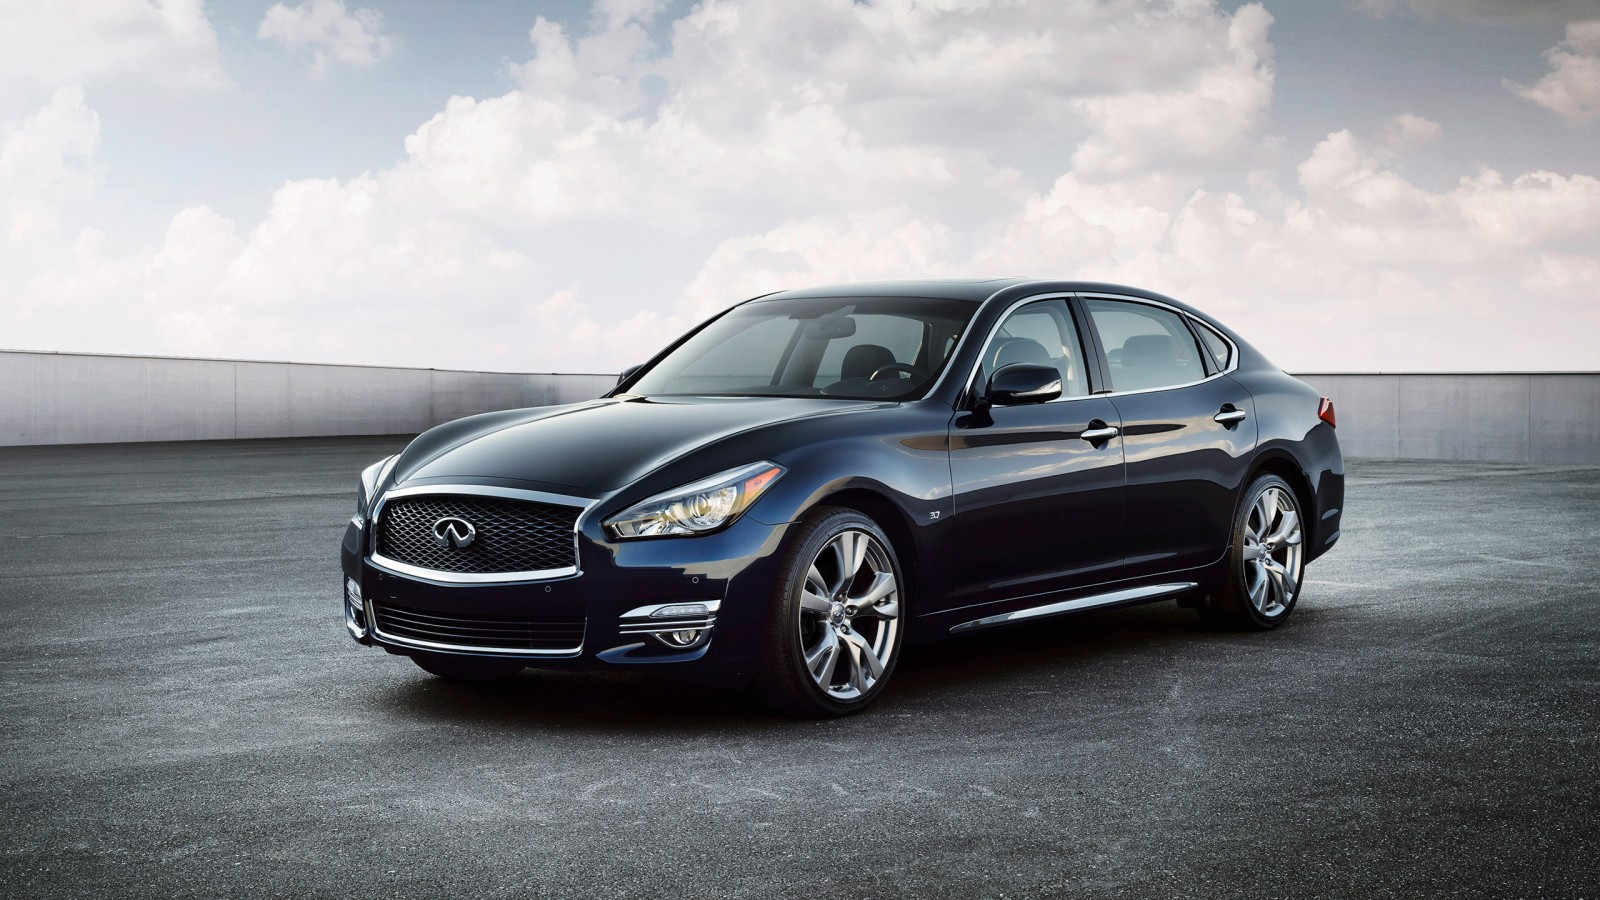 2015 infiniti q70 facelift wallpaper hd car wallpapers id 4494. Black Bedroom Furniture Sets. Home Design Ideas